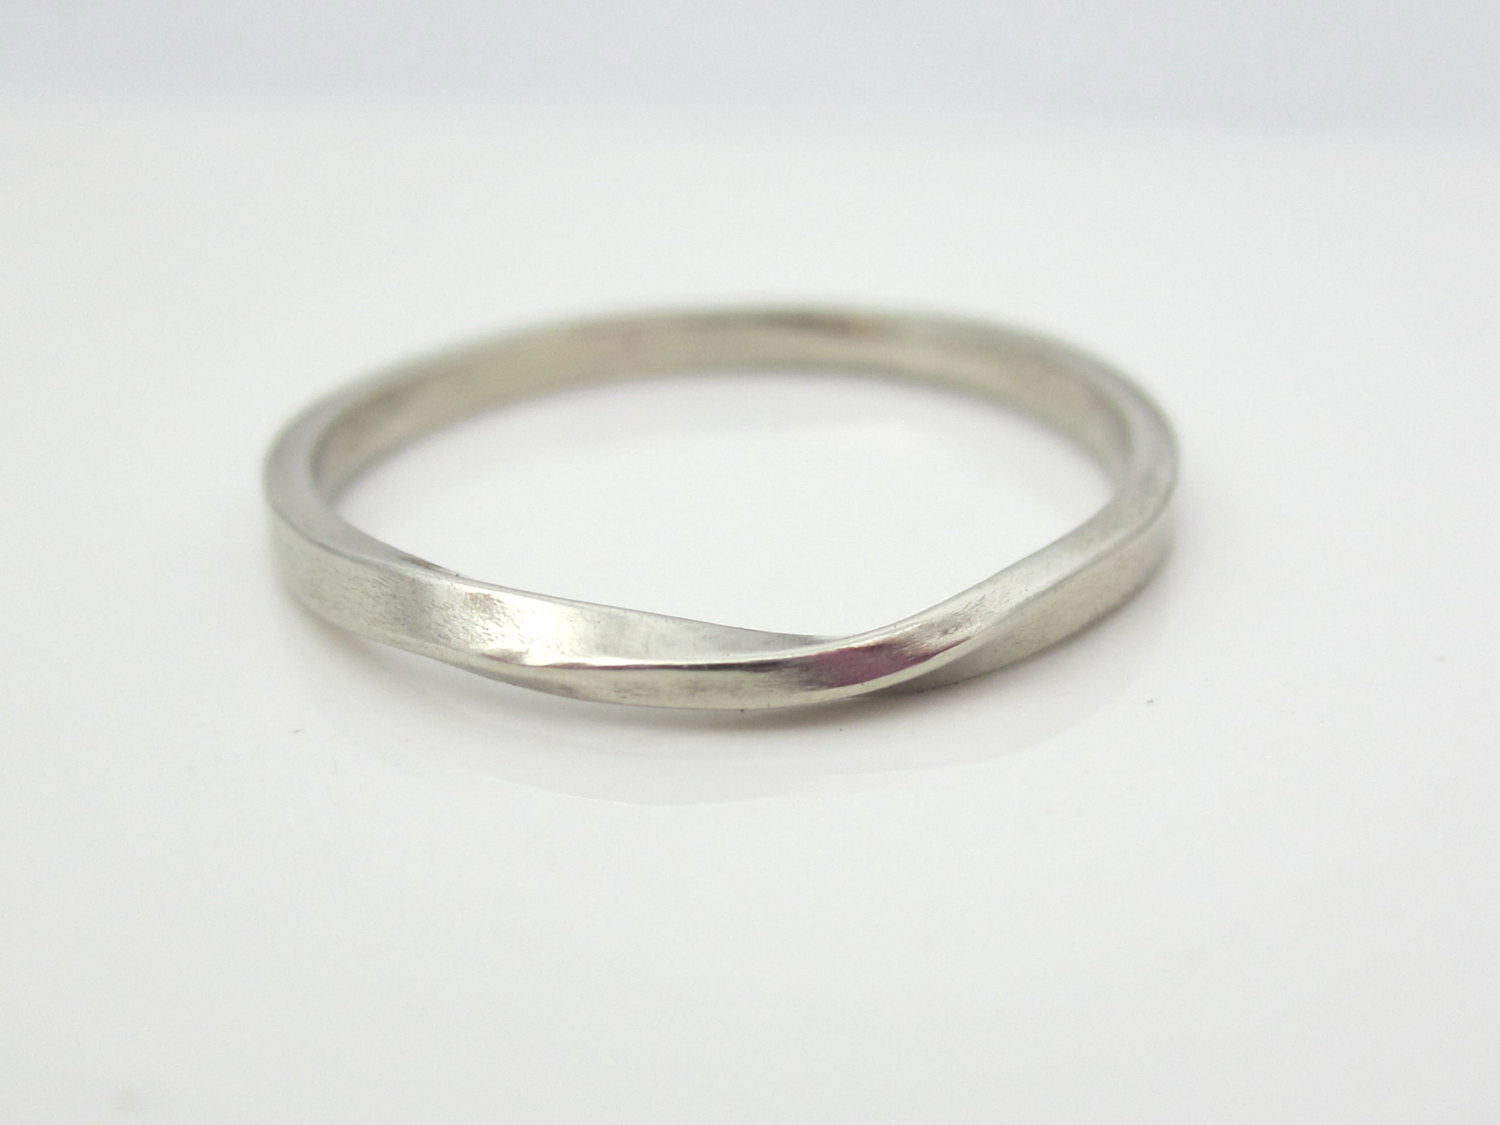 b52ee30a624 White Gold Mobius Strip Ring